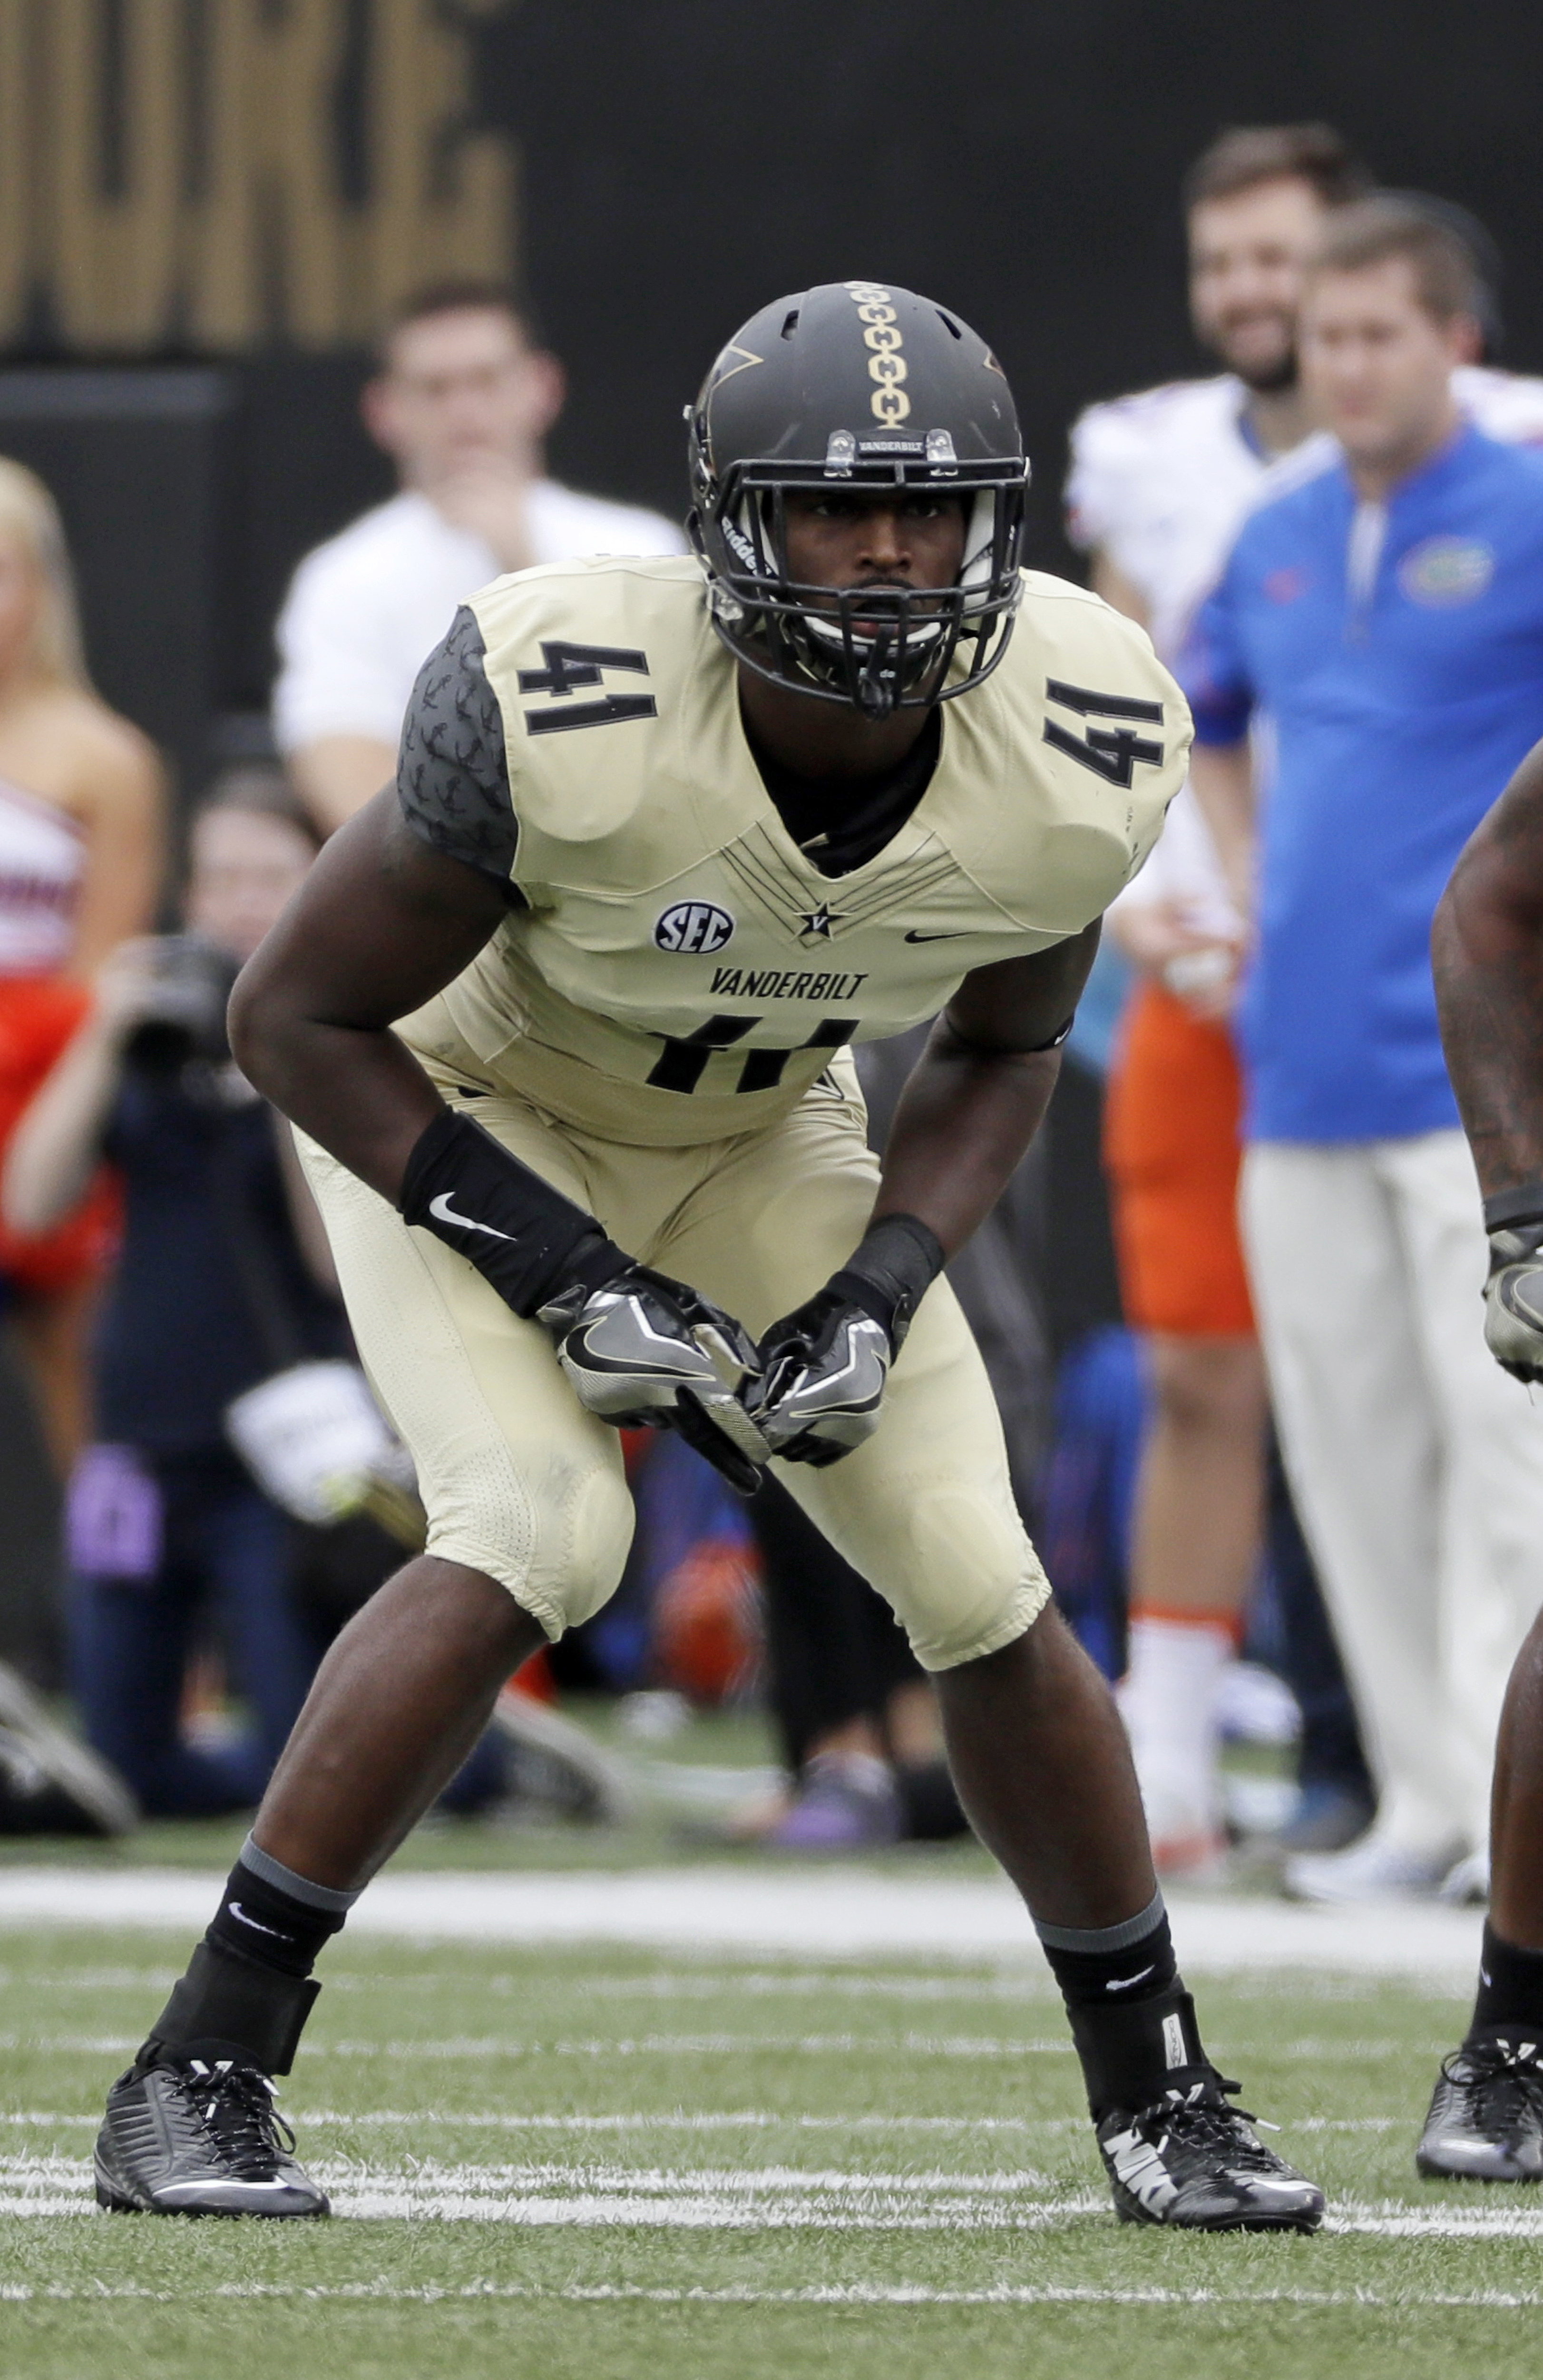 FILE - In this Oct. 1, 2016, file photo, Vanderbilt linebacker Zach Cunningham plays against Florida during an NCAA college football game in Nashville, Tenn. Cunningham has been among the nations most productive defensive players and earned first-team AP